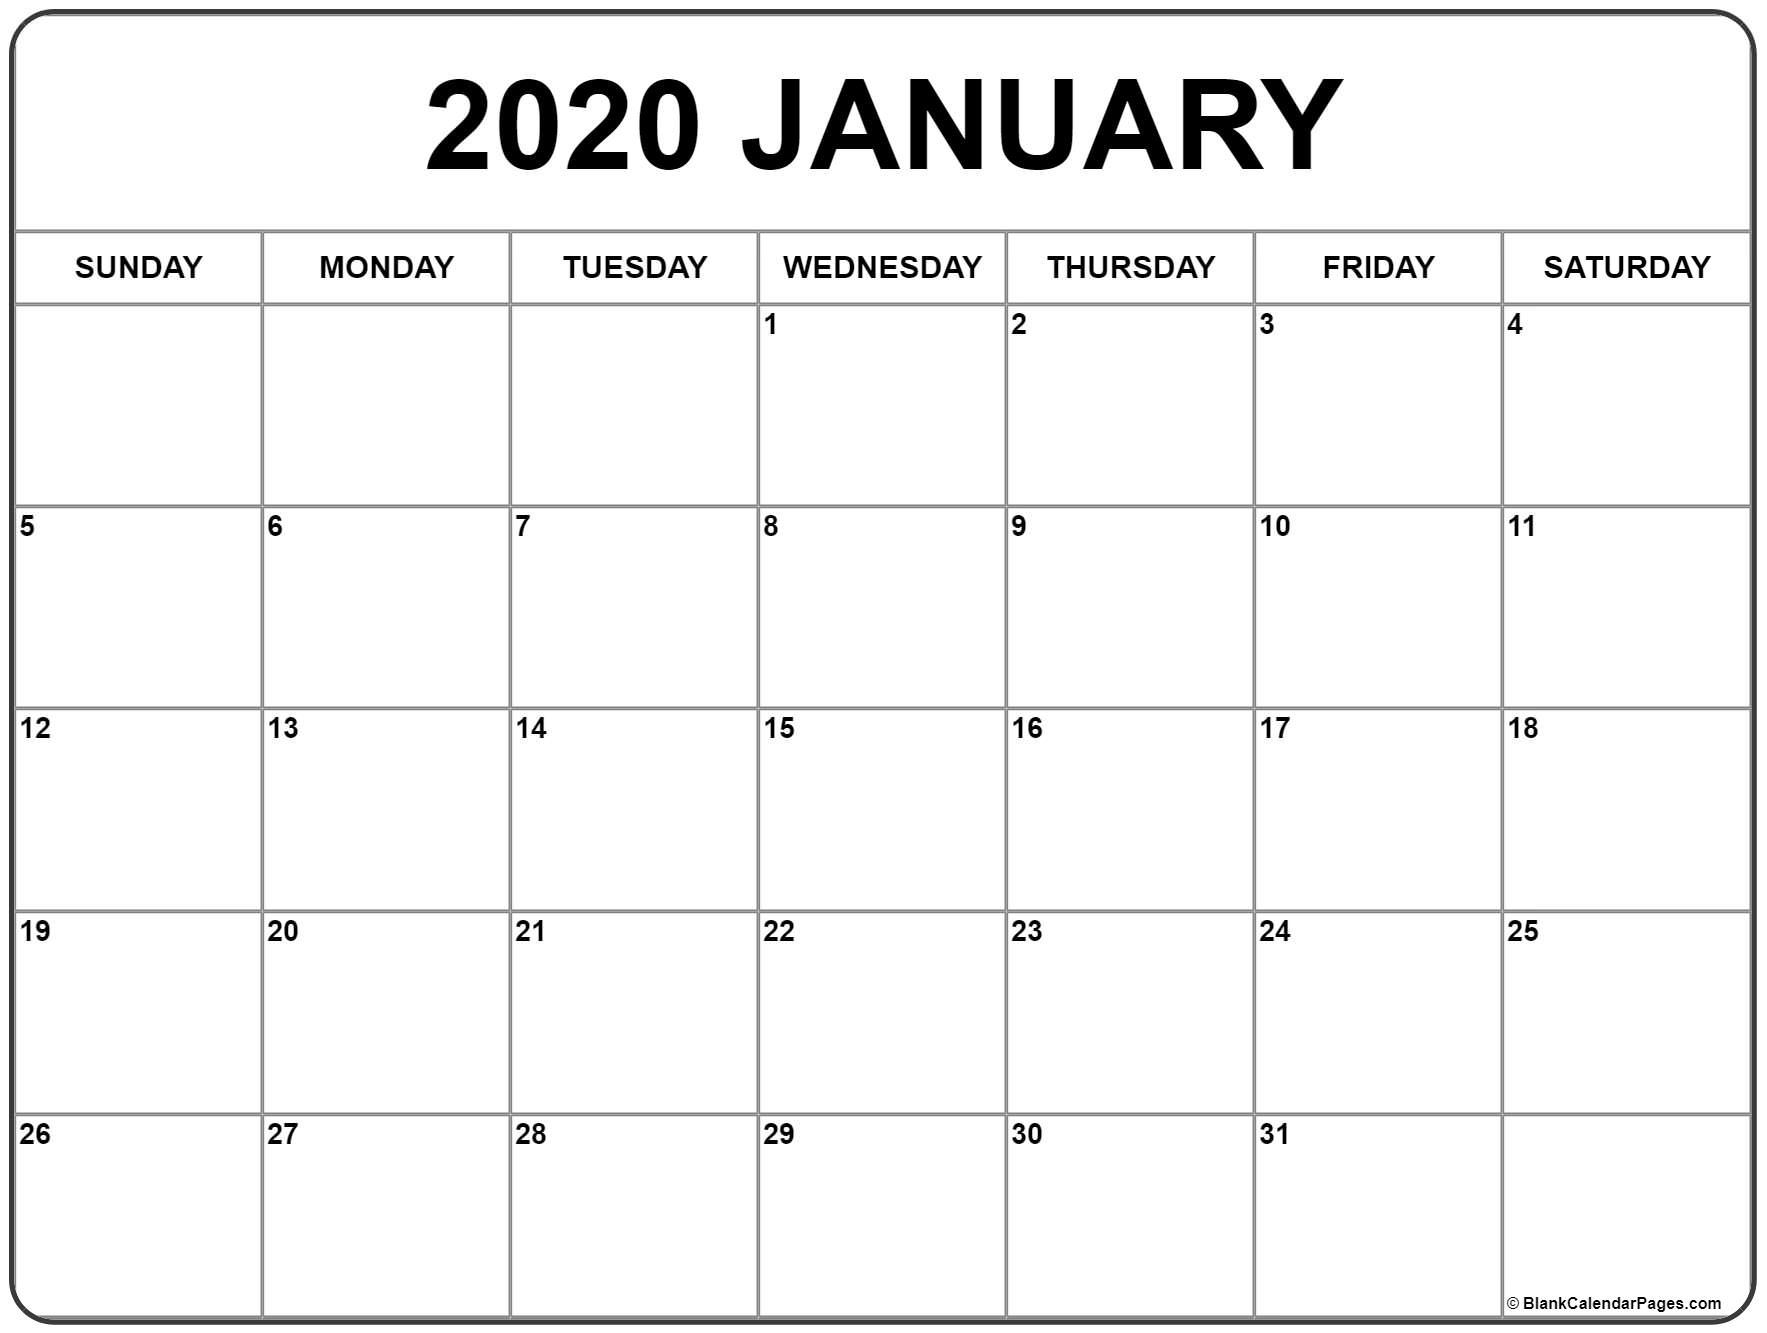 January 2020 Calendar | Free Printable Monthly Calendars in 2020 Free Printable Calendars With Lines Without Downloading